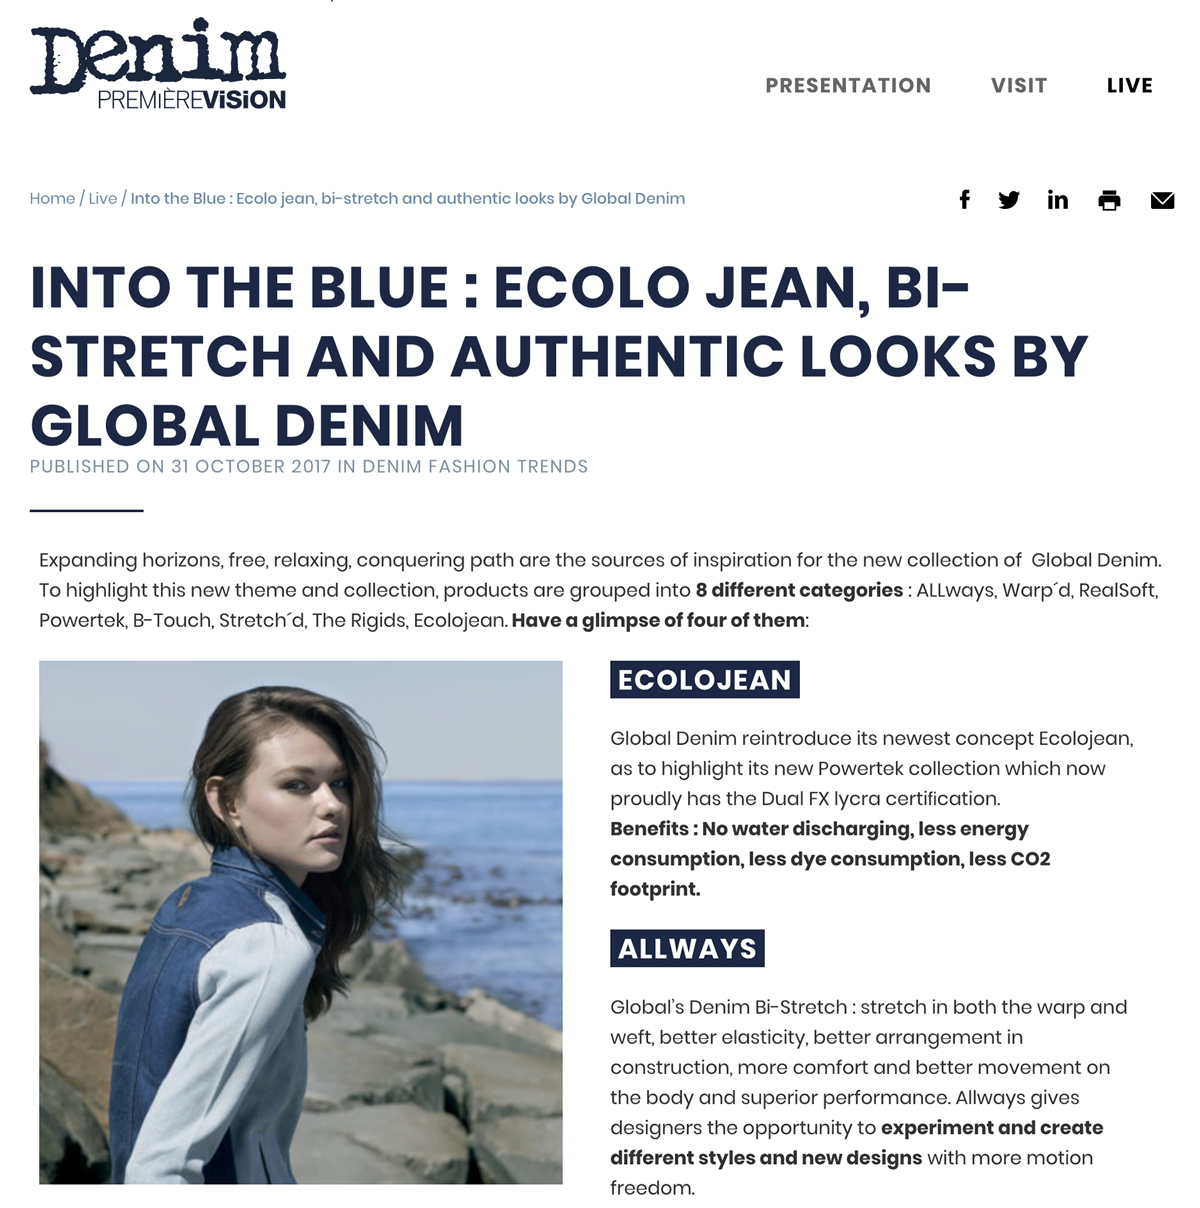 Global Denim® Destacado en el website de Denim PV